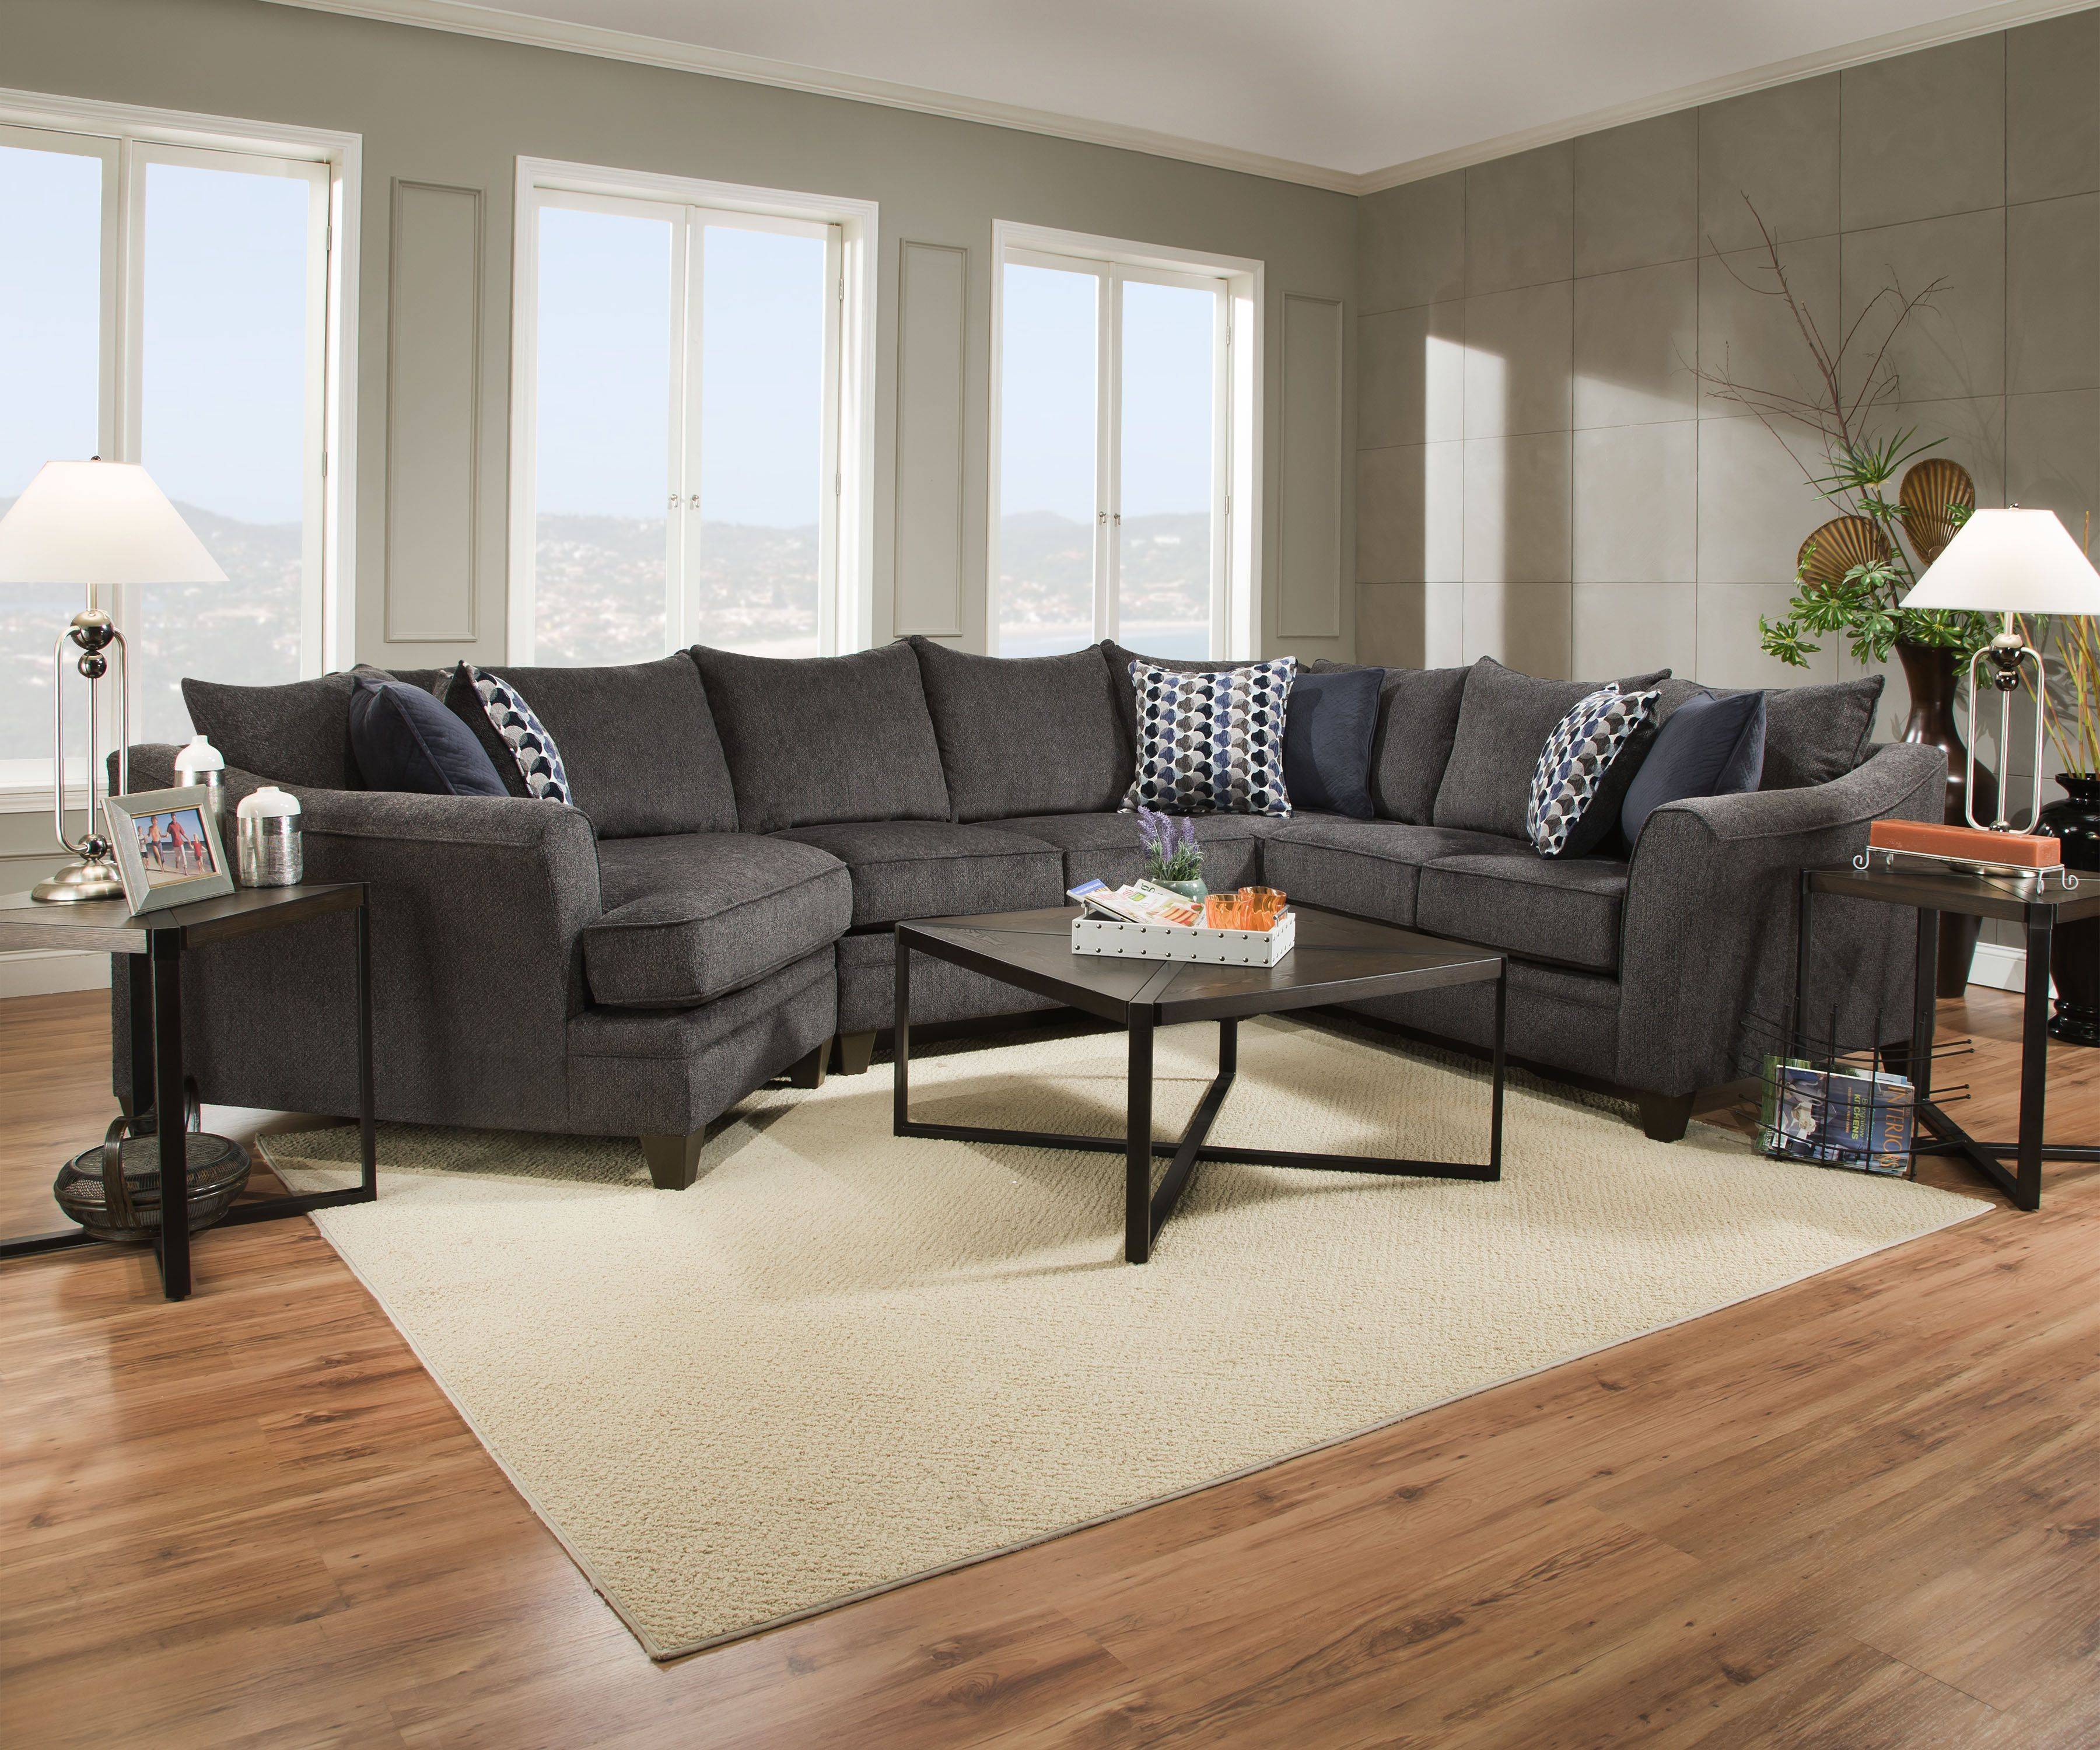 Cheap Furniture Brands: Sears: Appliances, Tools, Apparel And More From Craftsman